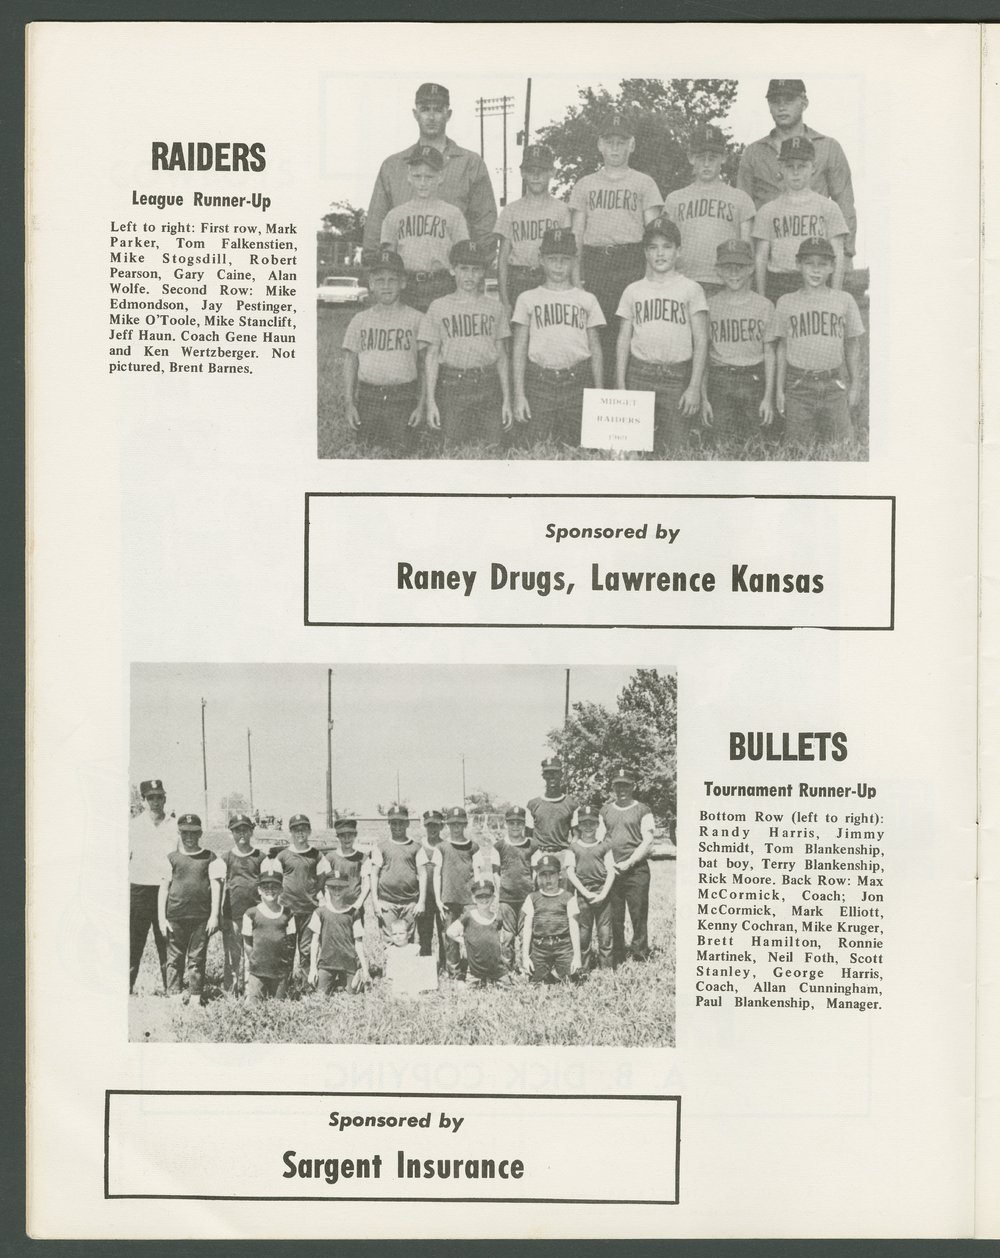 1969 SCABA baseball yearbook, Topeka, Kansas - 12